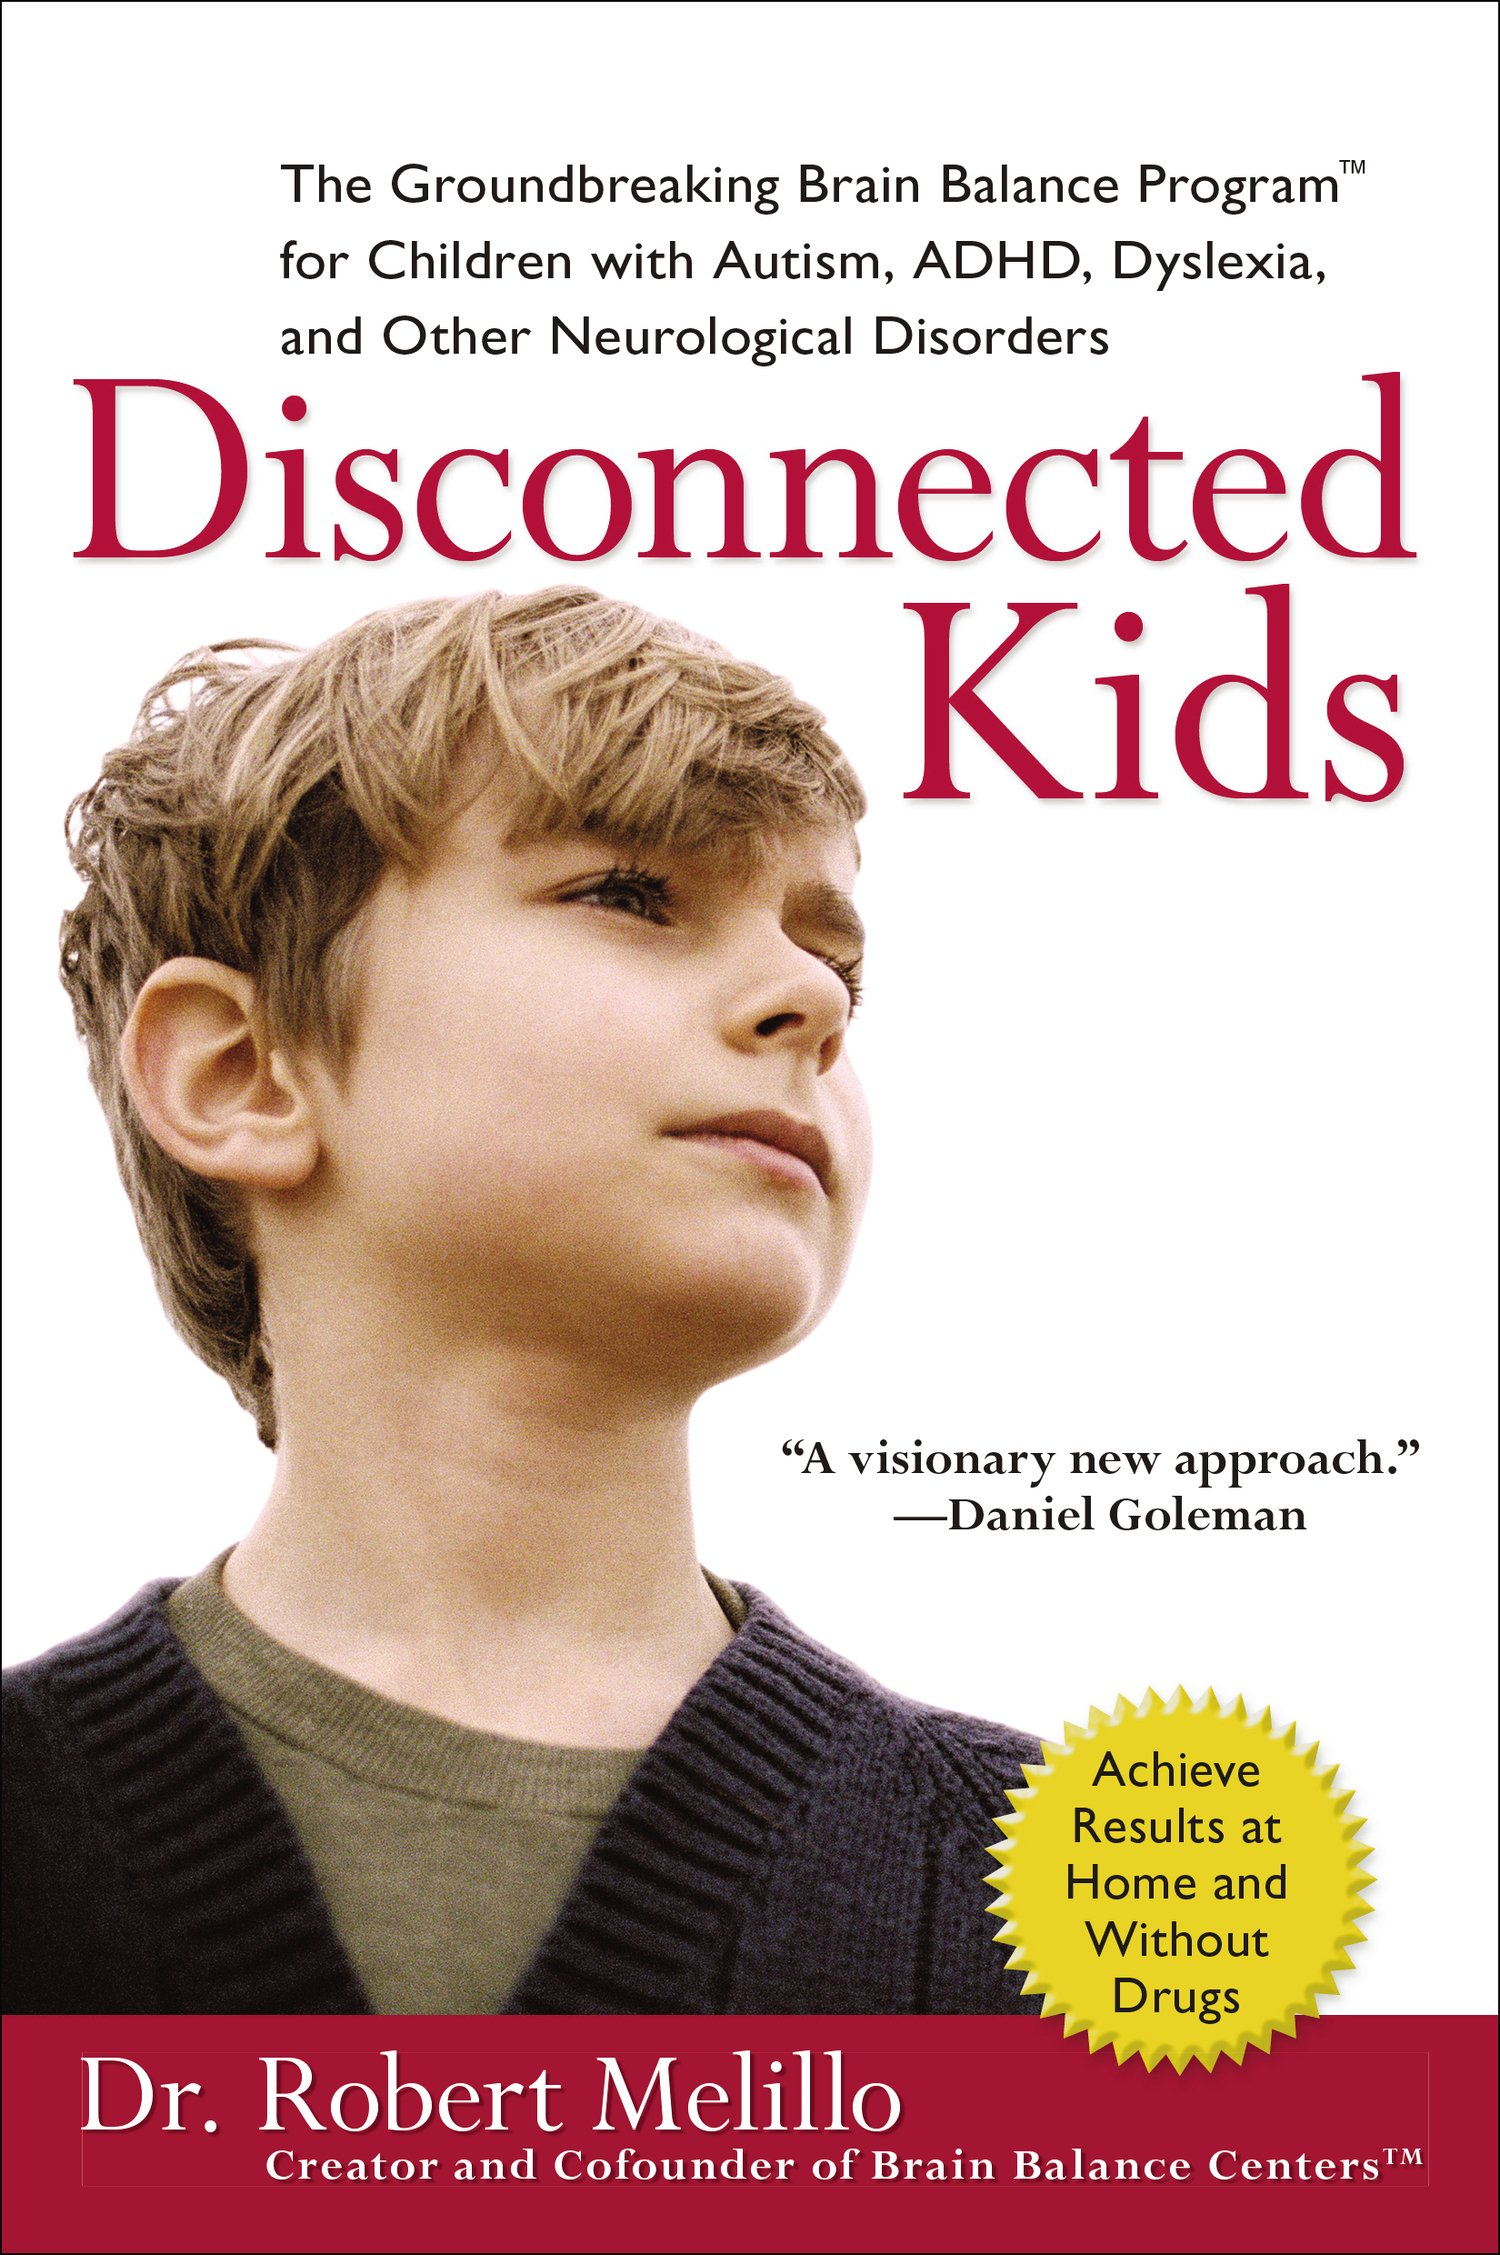 Disconnected Kids Groundbreaking Neurological Disorders product image